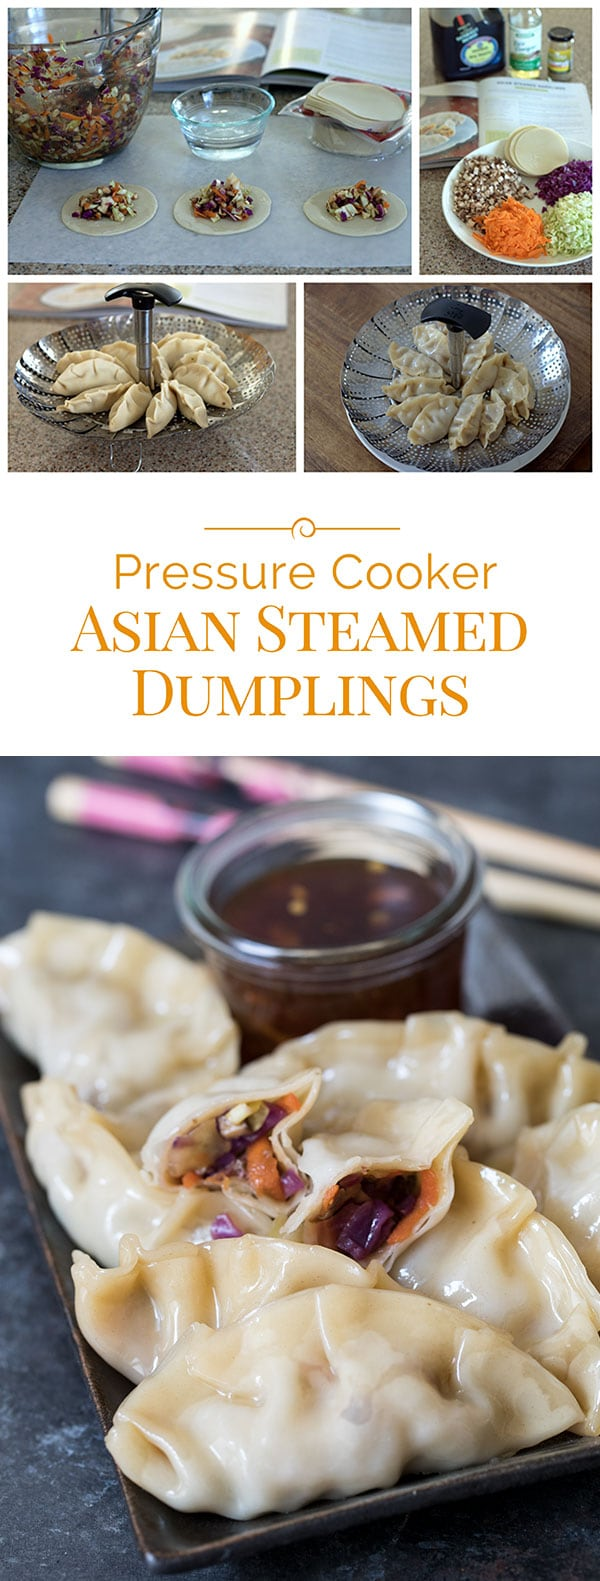 photo collage of Asian steamed dumplings, made in an Instant Pot